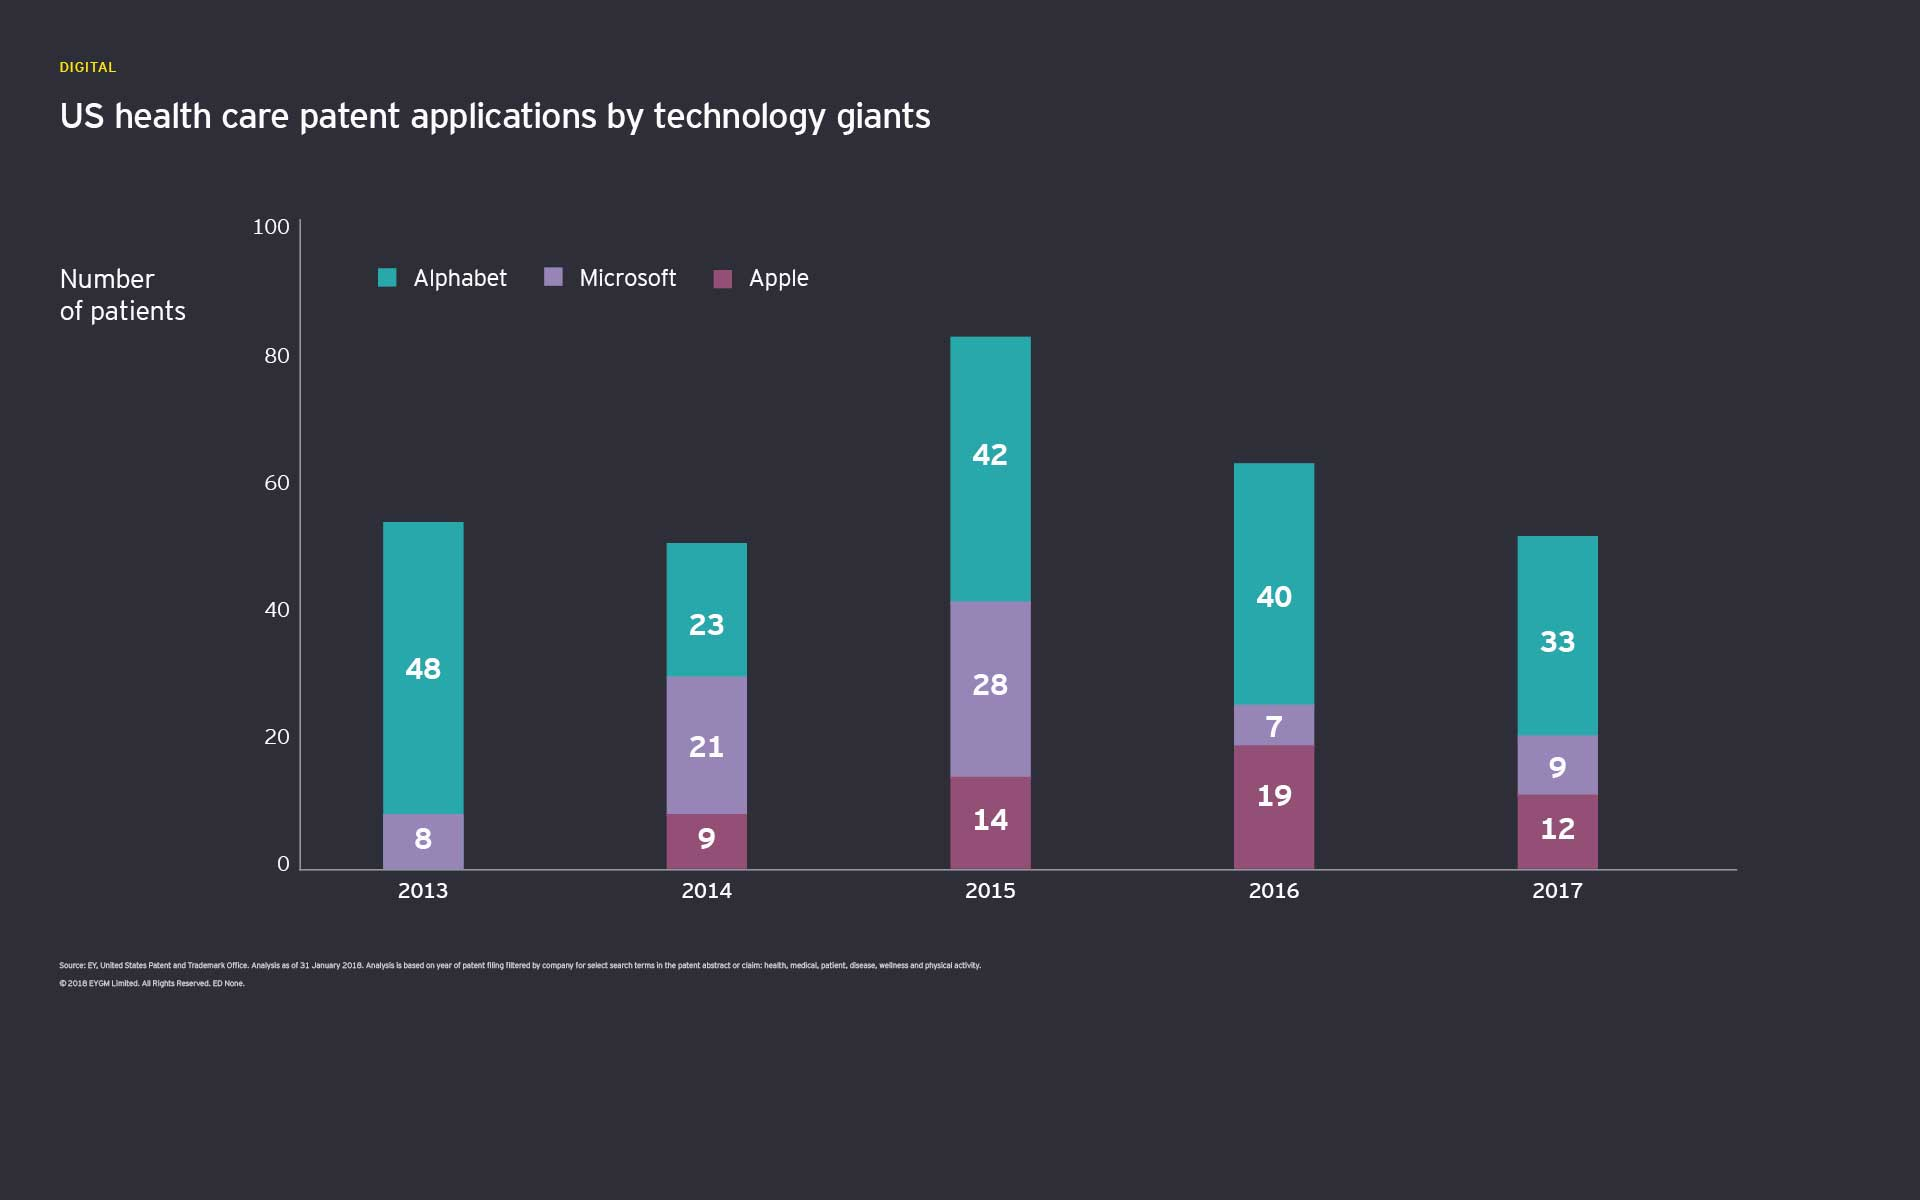 US health care patent applications by technology